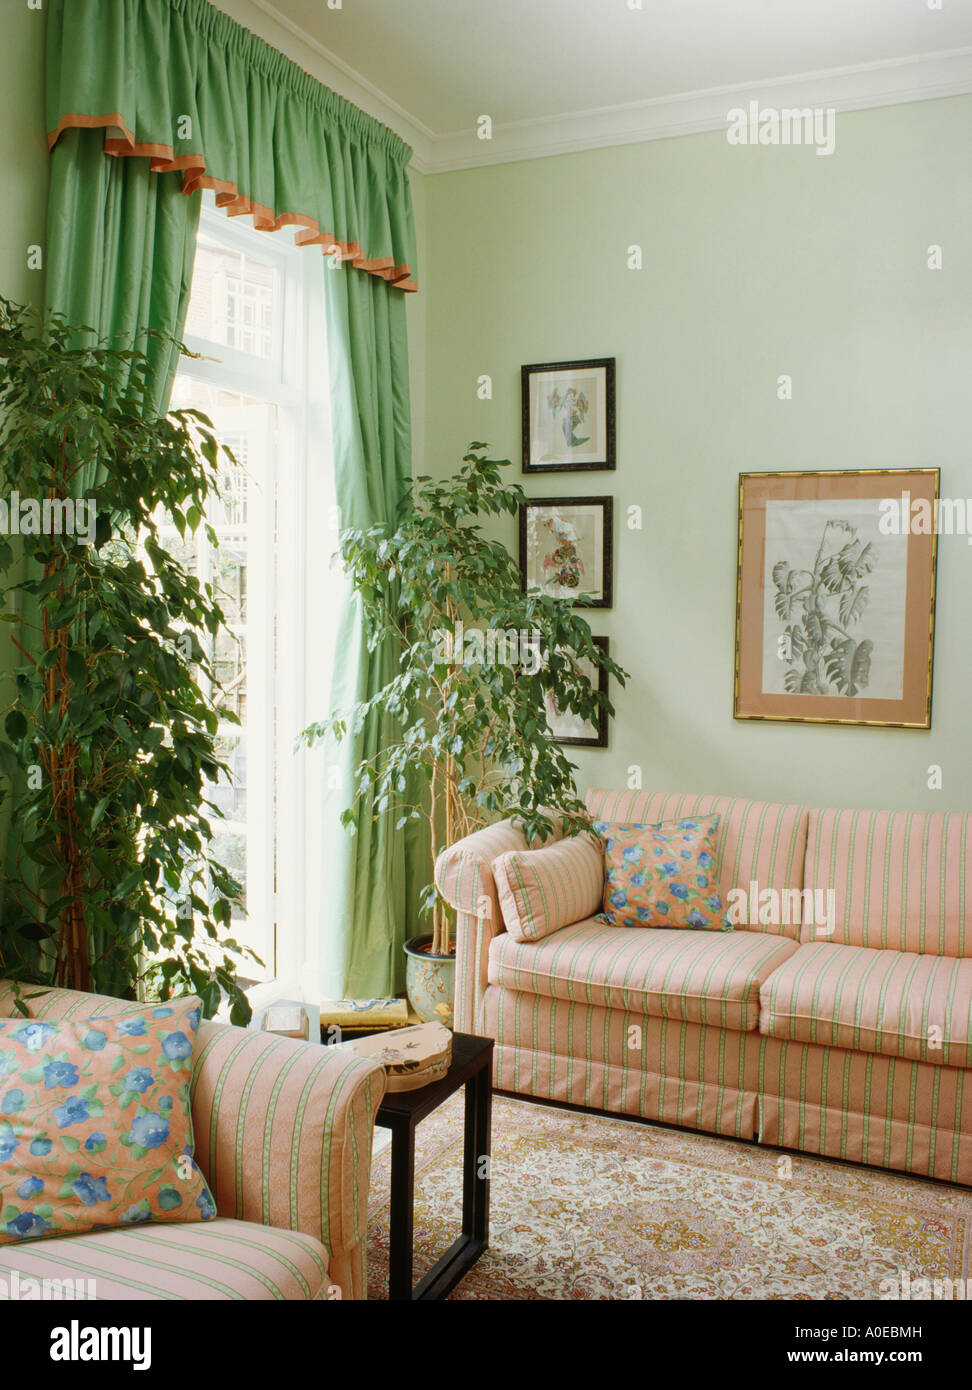 Tall Green Houseplants And Pale Green Curtains Edged With Peach In Stock Photo 9970144 Alamy